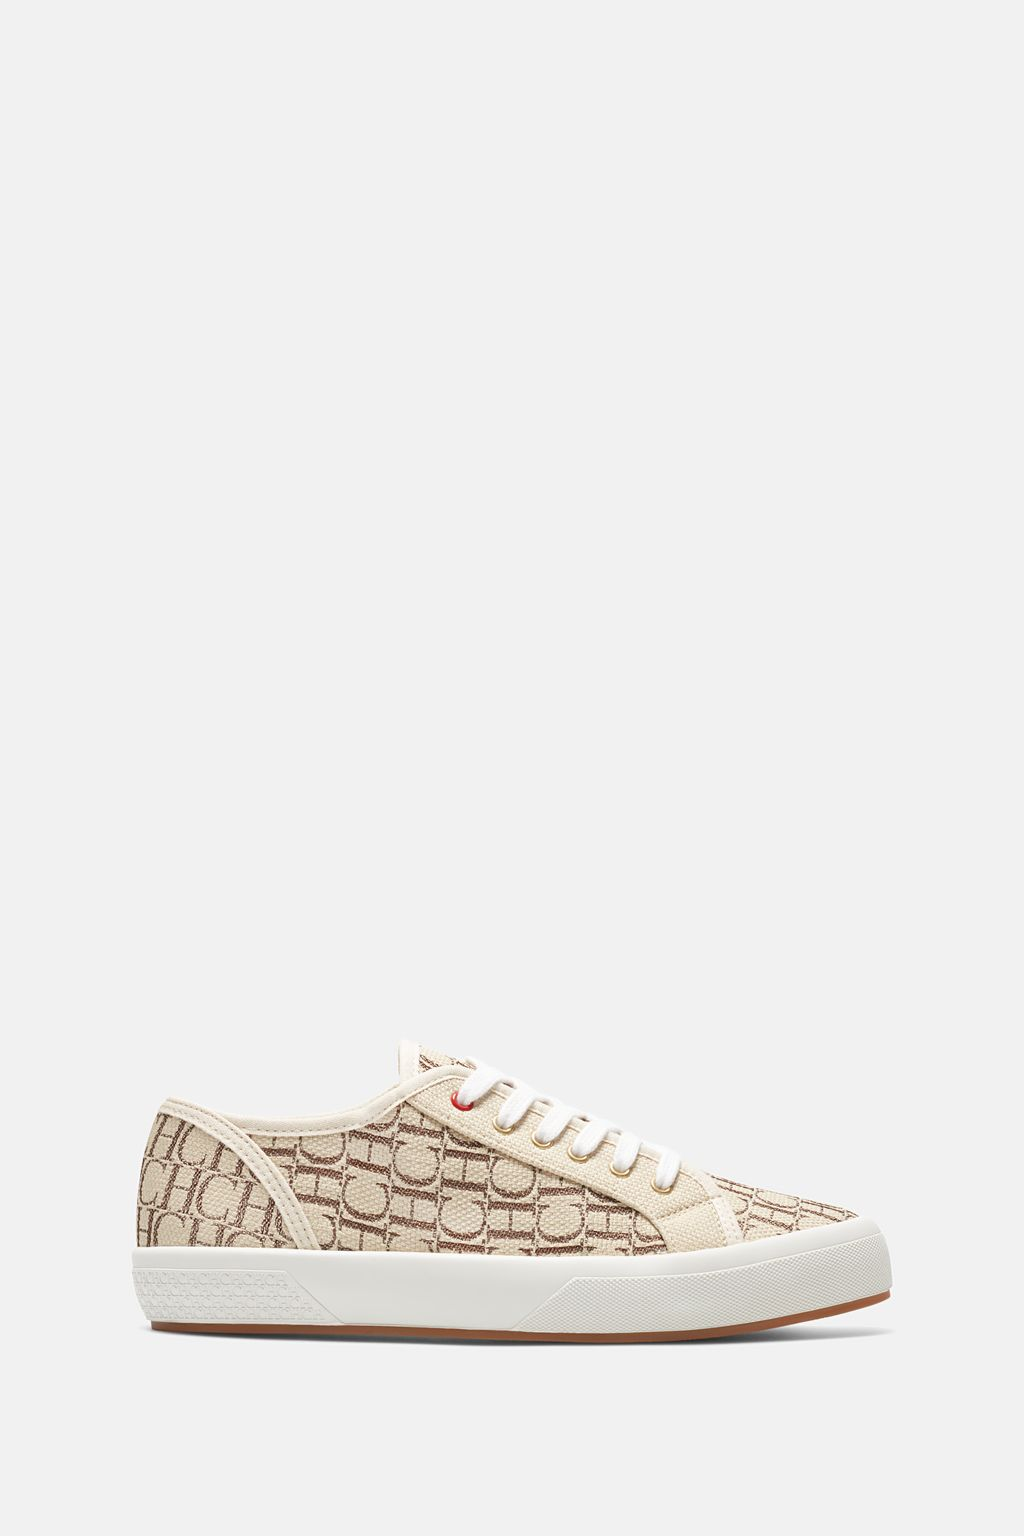 Caracas canvas Bamba sneakers